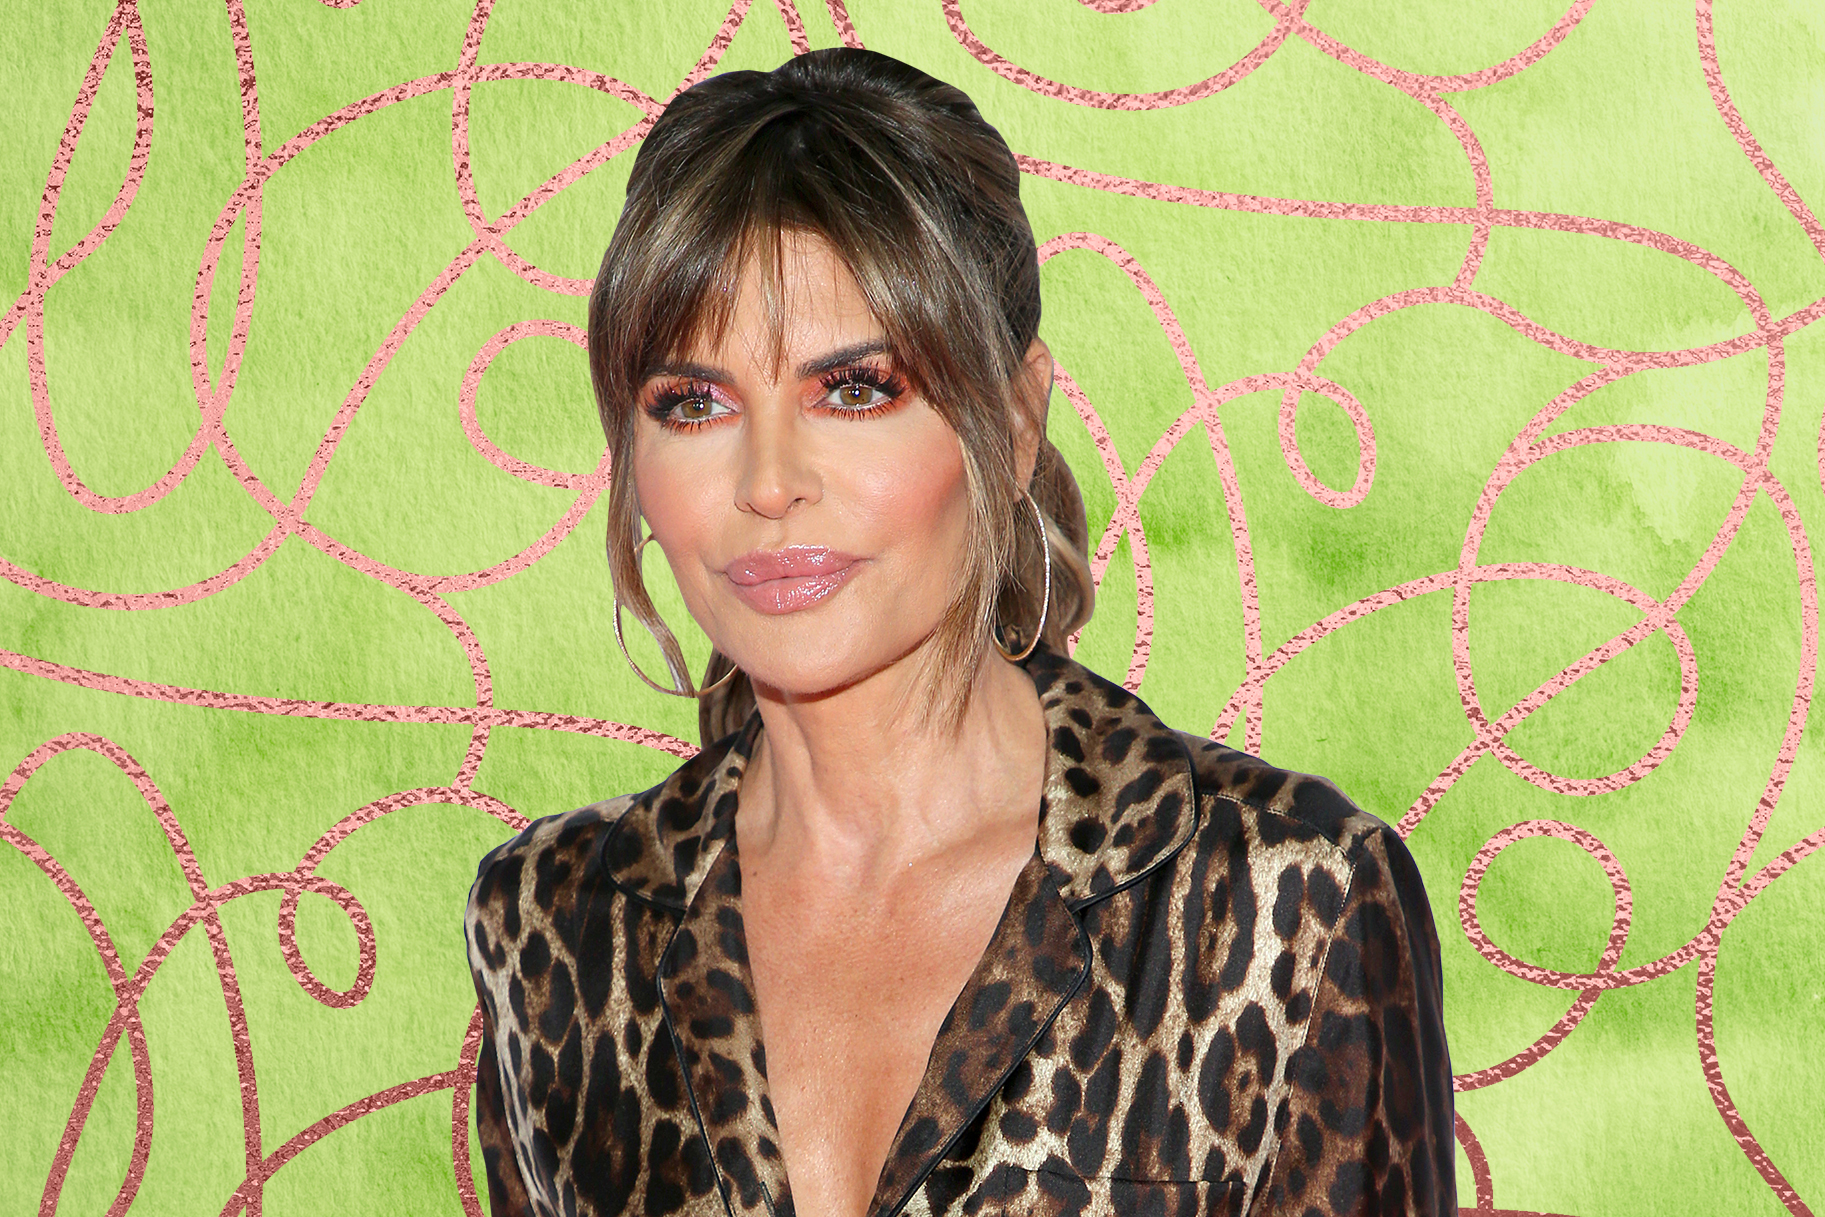 """""""petition-to-remove-lisa-rinna-from-rhobh-reaches-2000-signatures-heres-why-some-fans-want-her-gone"""""""